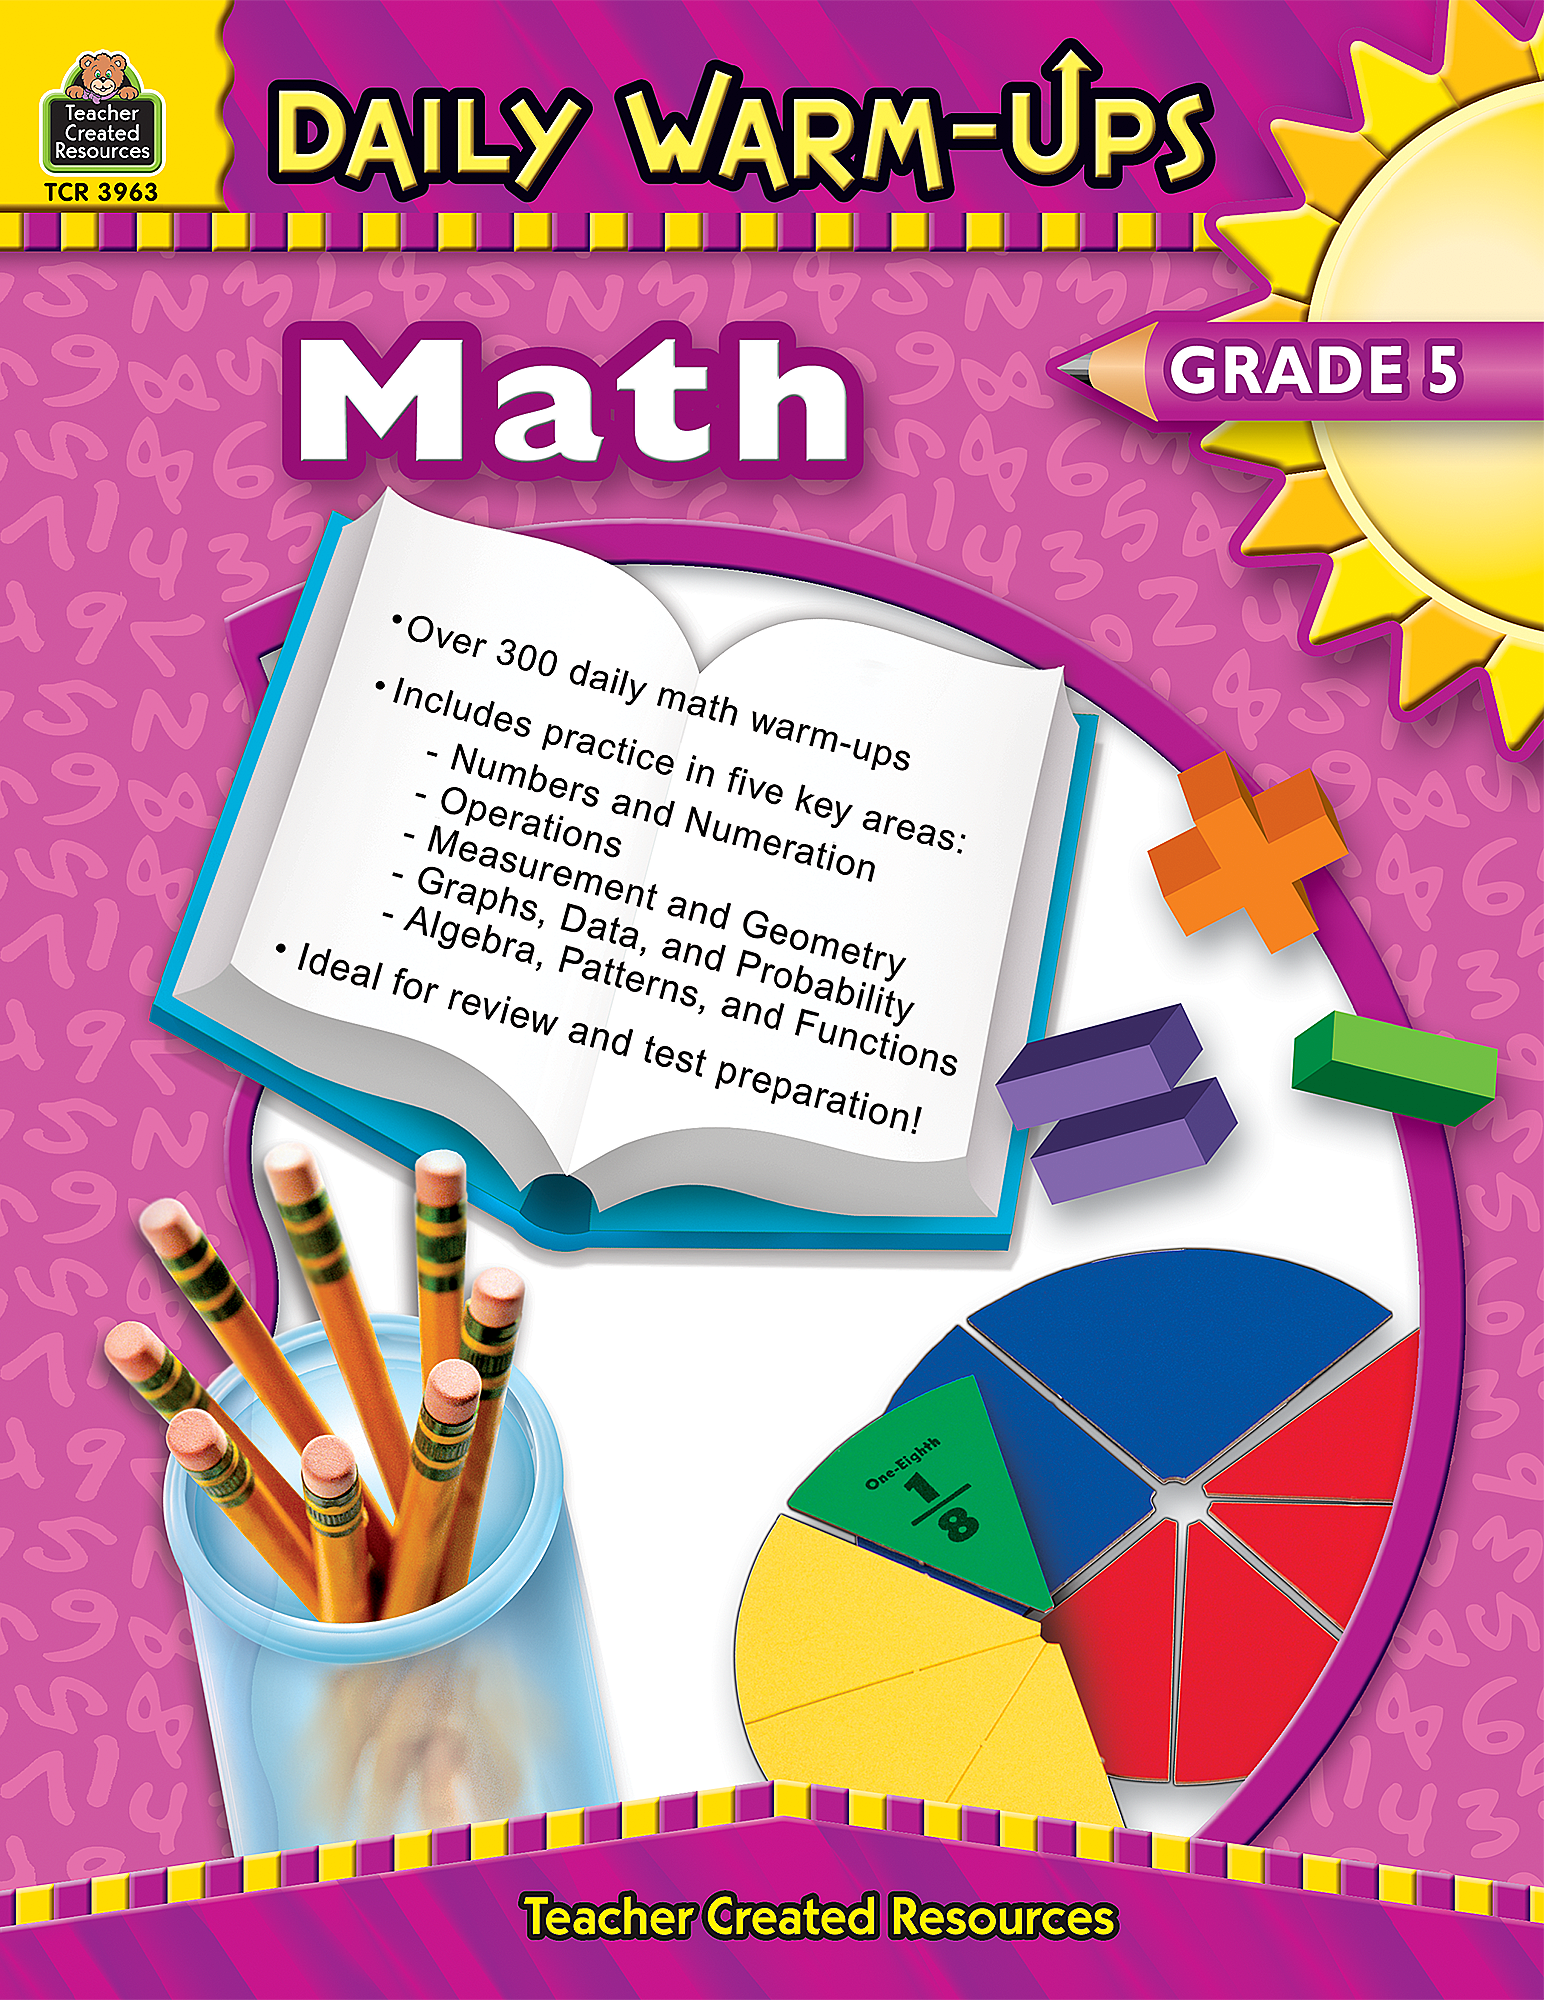 Worksheet Math 5 daily warm ups math grade 5 tcr3963 products teacher created resources